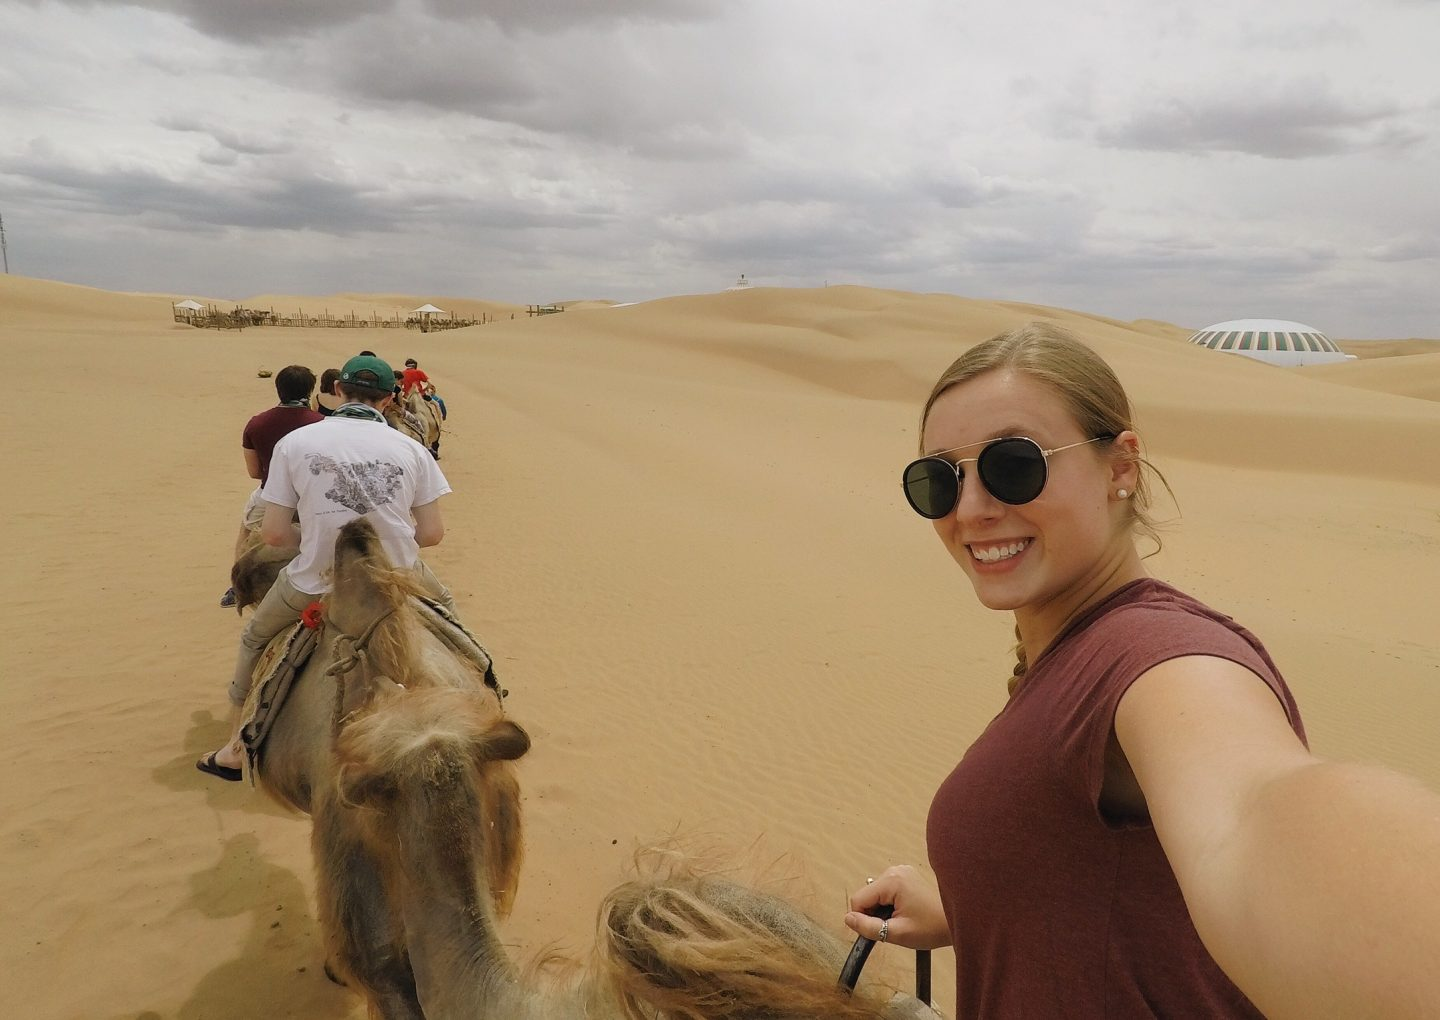 Riding camels in the desert in Inner Mongolia, China!